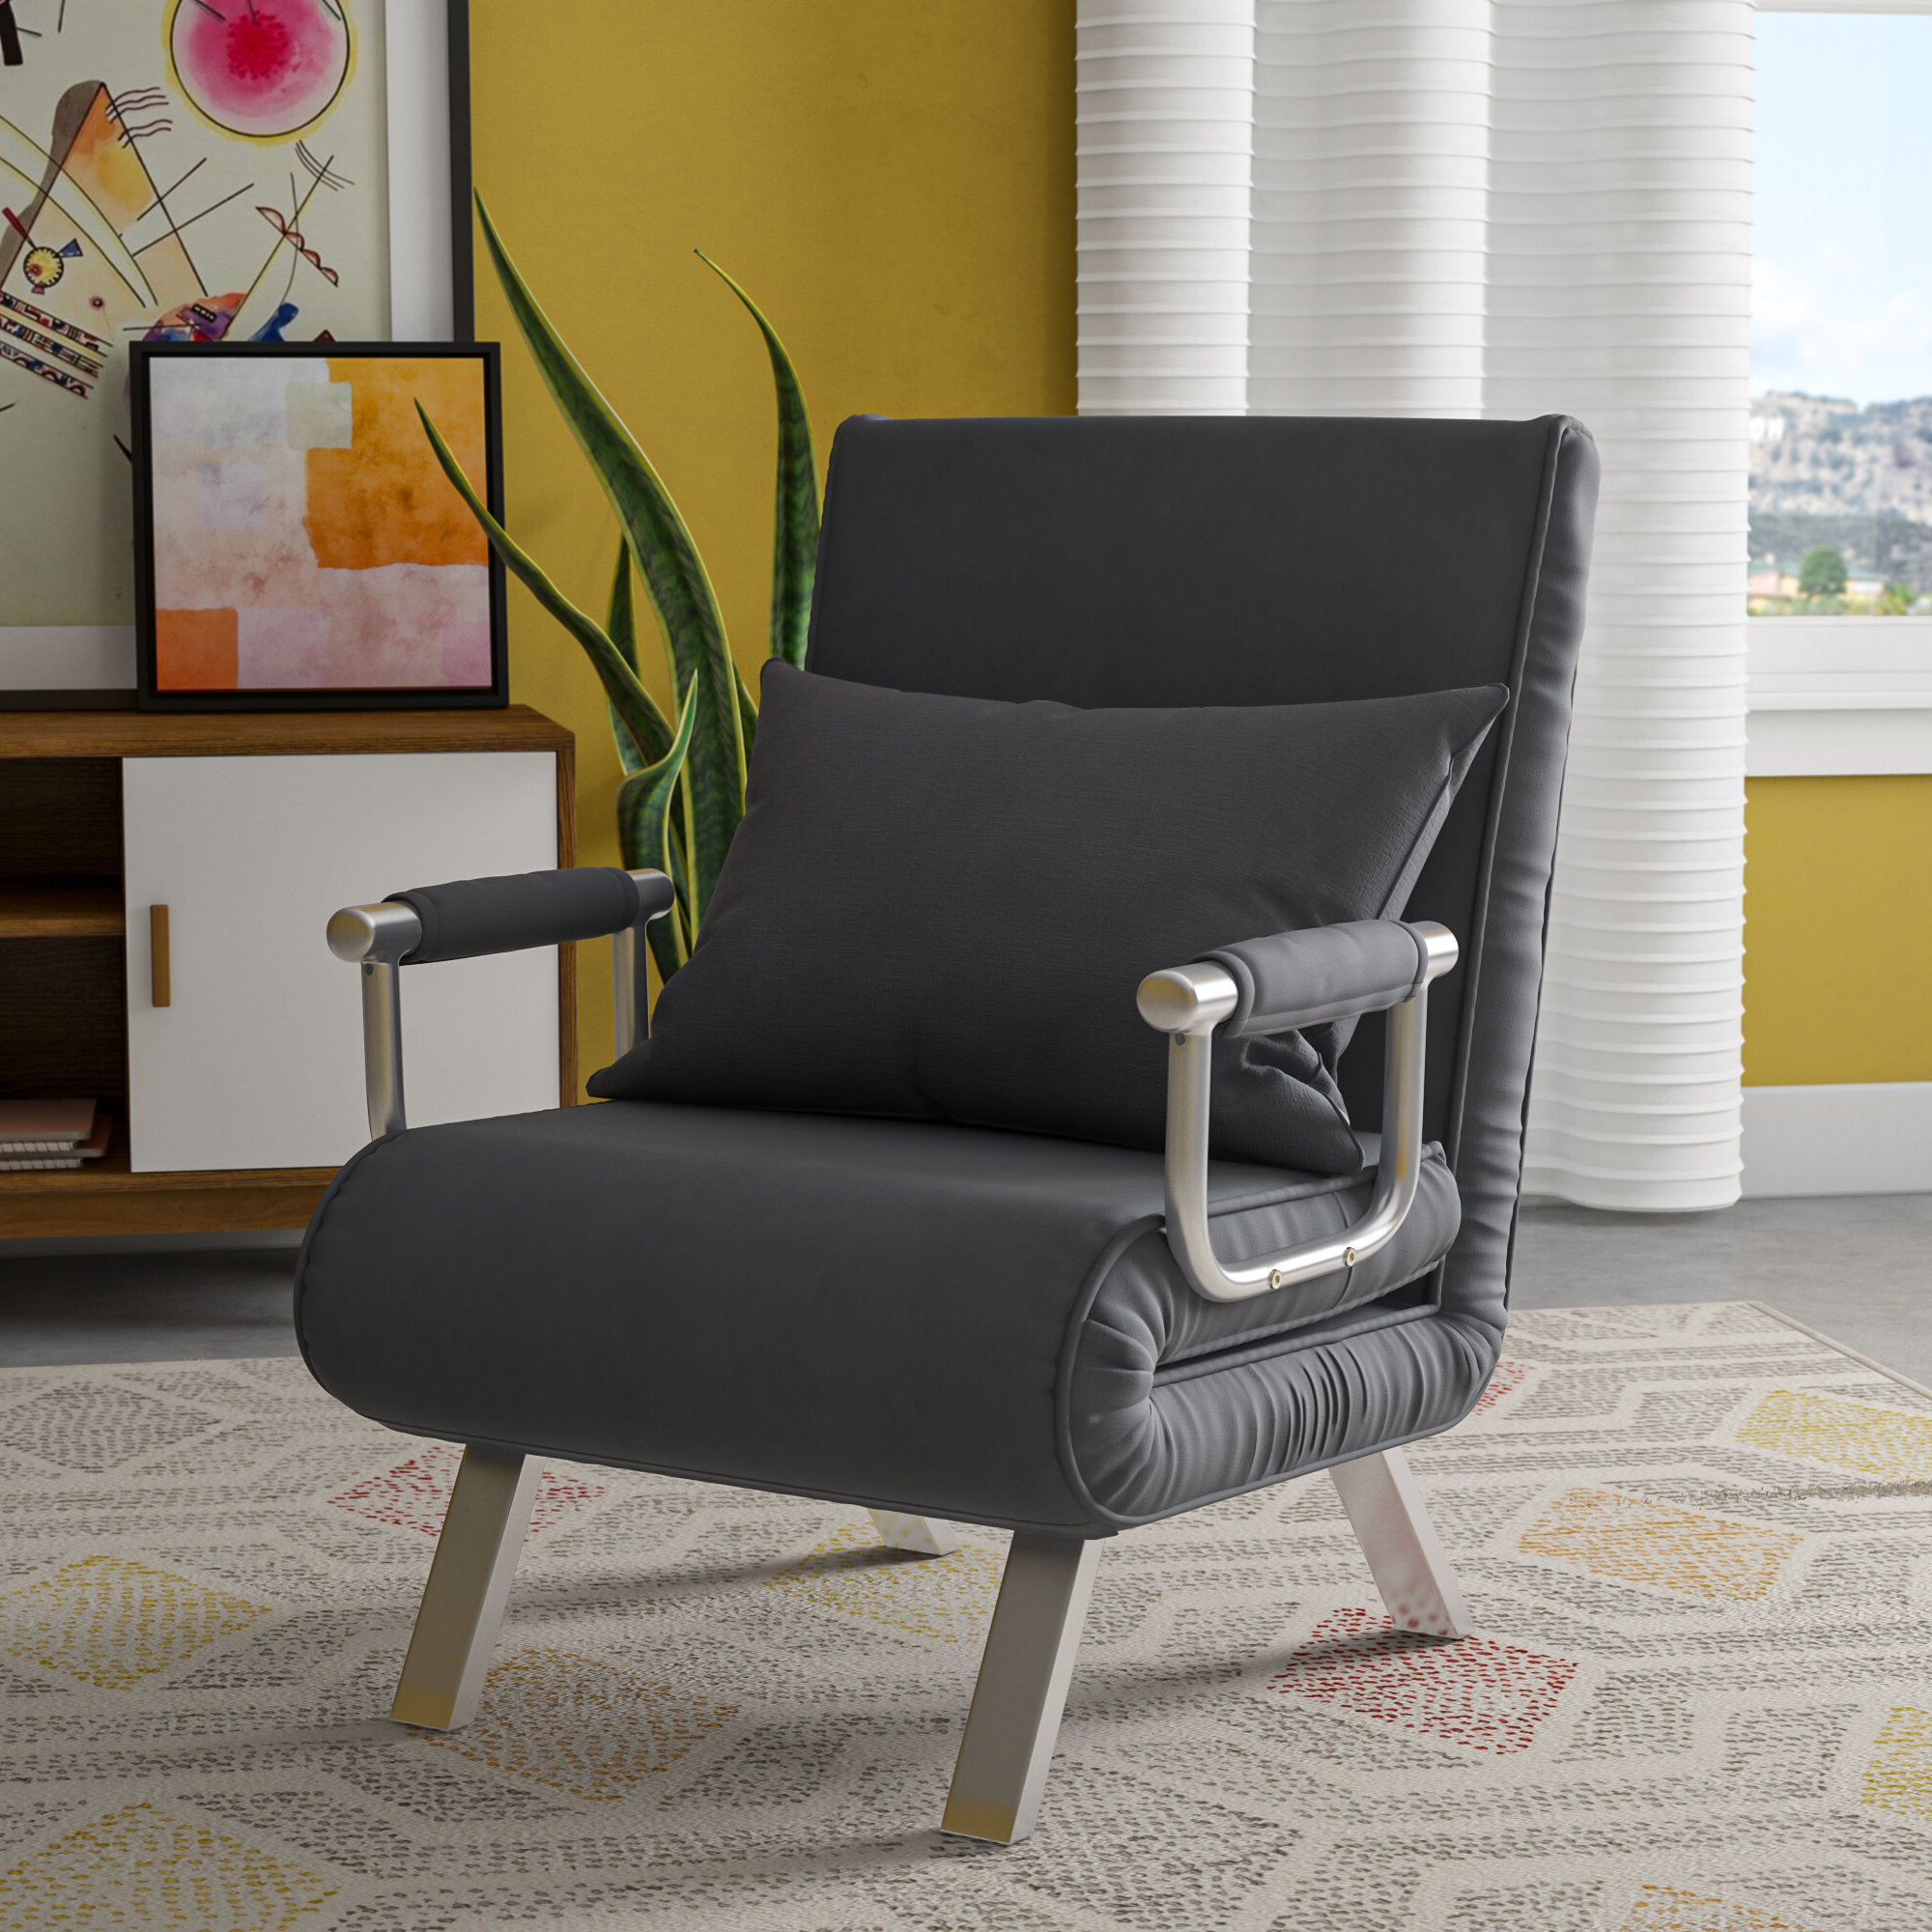 Longoria Convertible Chair Regarding Preferred Longoria Convertible Chairs (View 2 of 20)